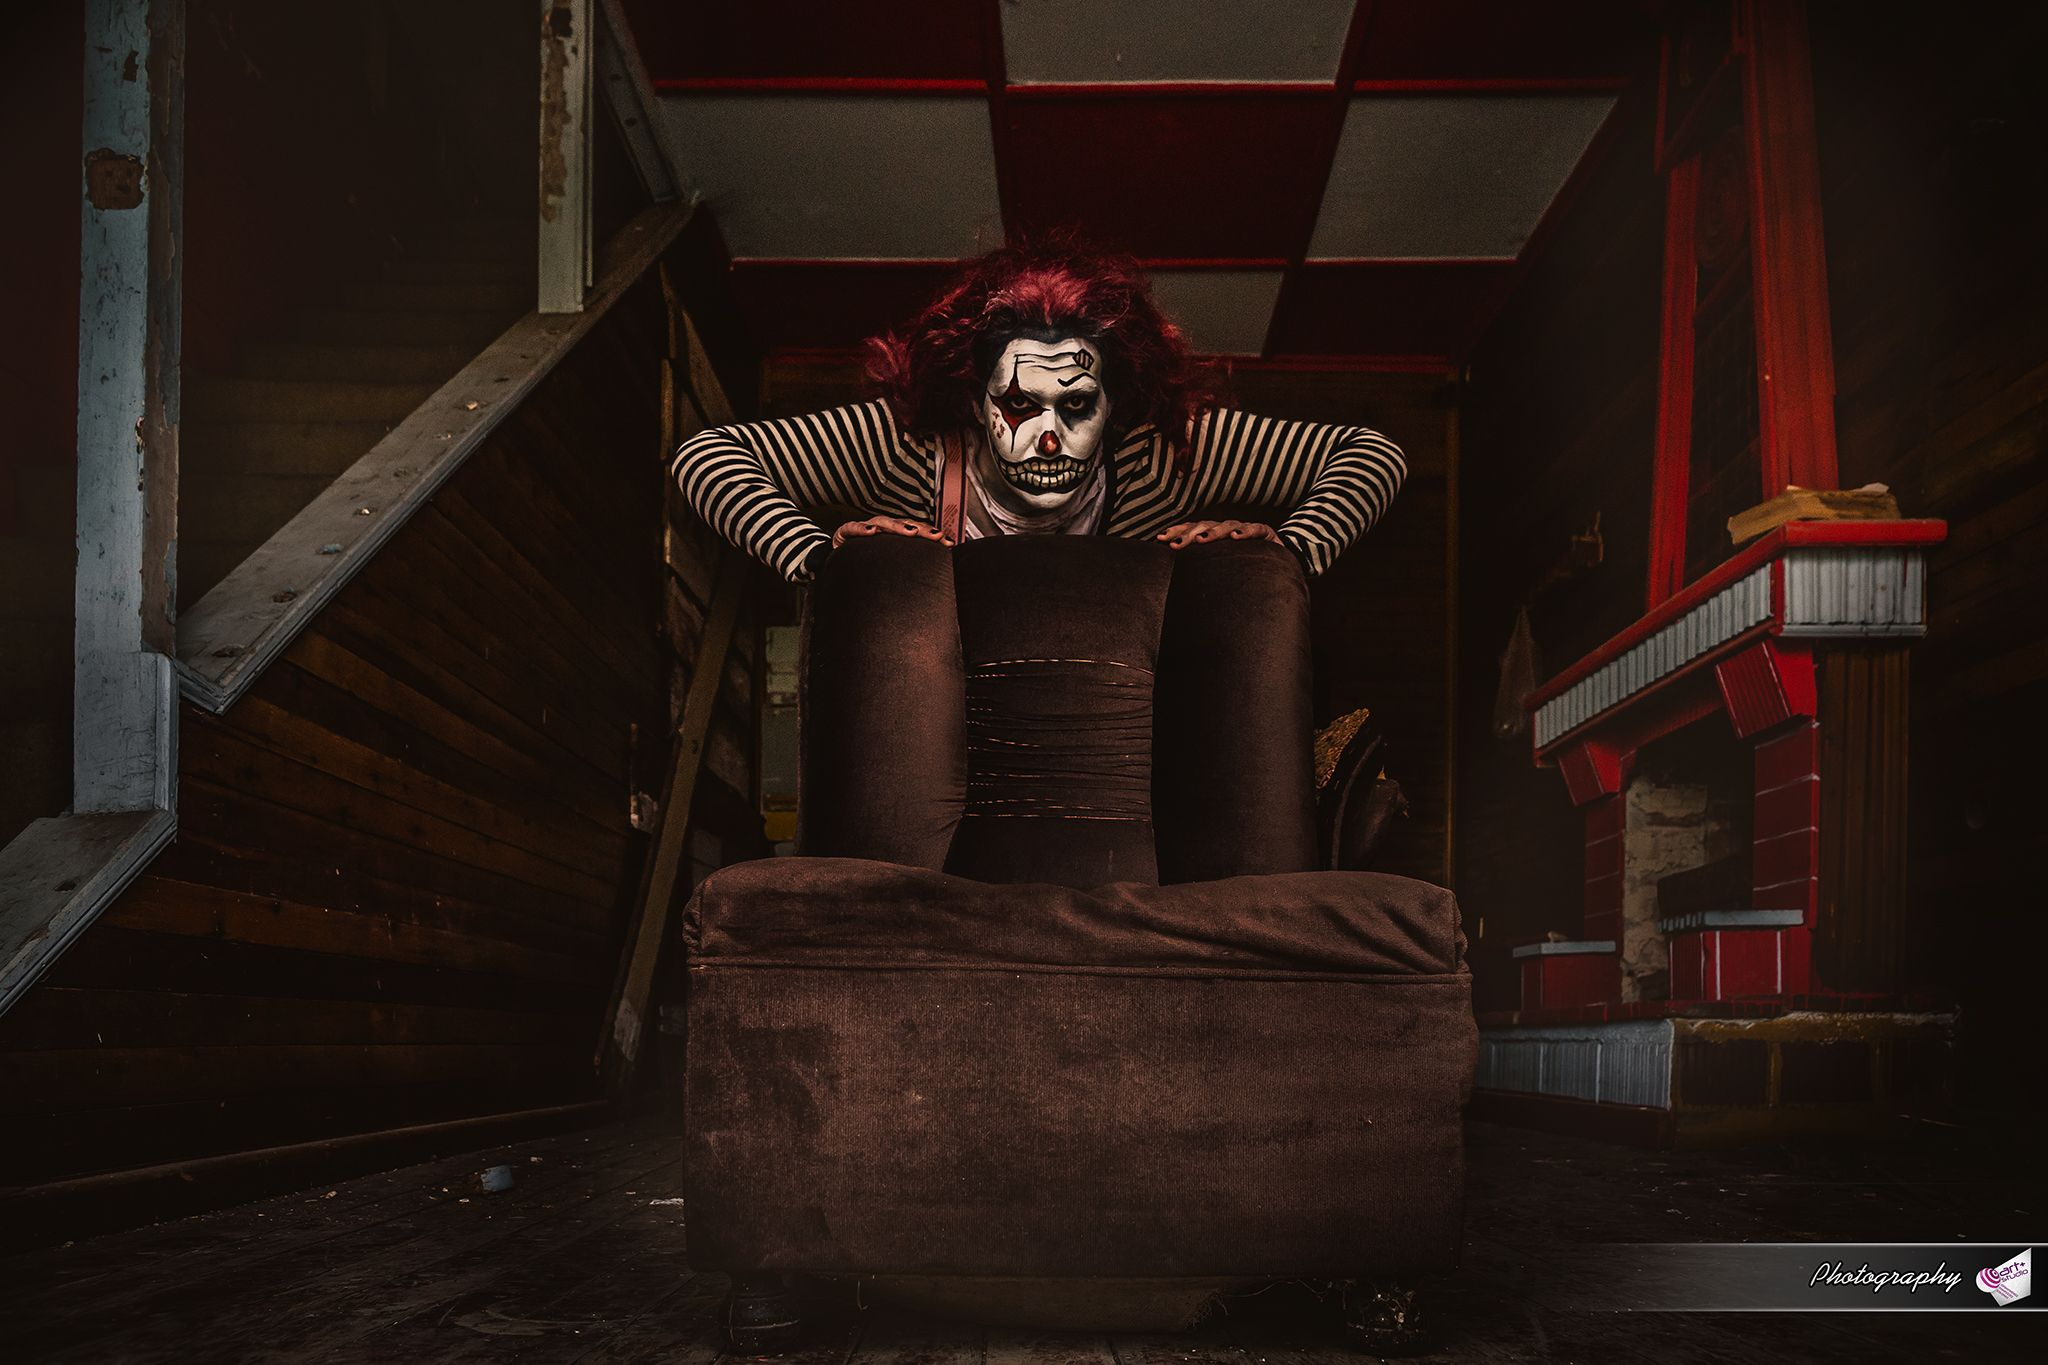 clown creepy halloween photography red white chess couch